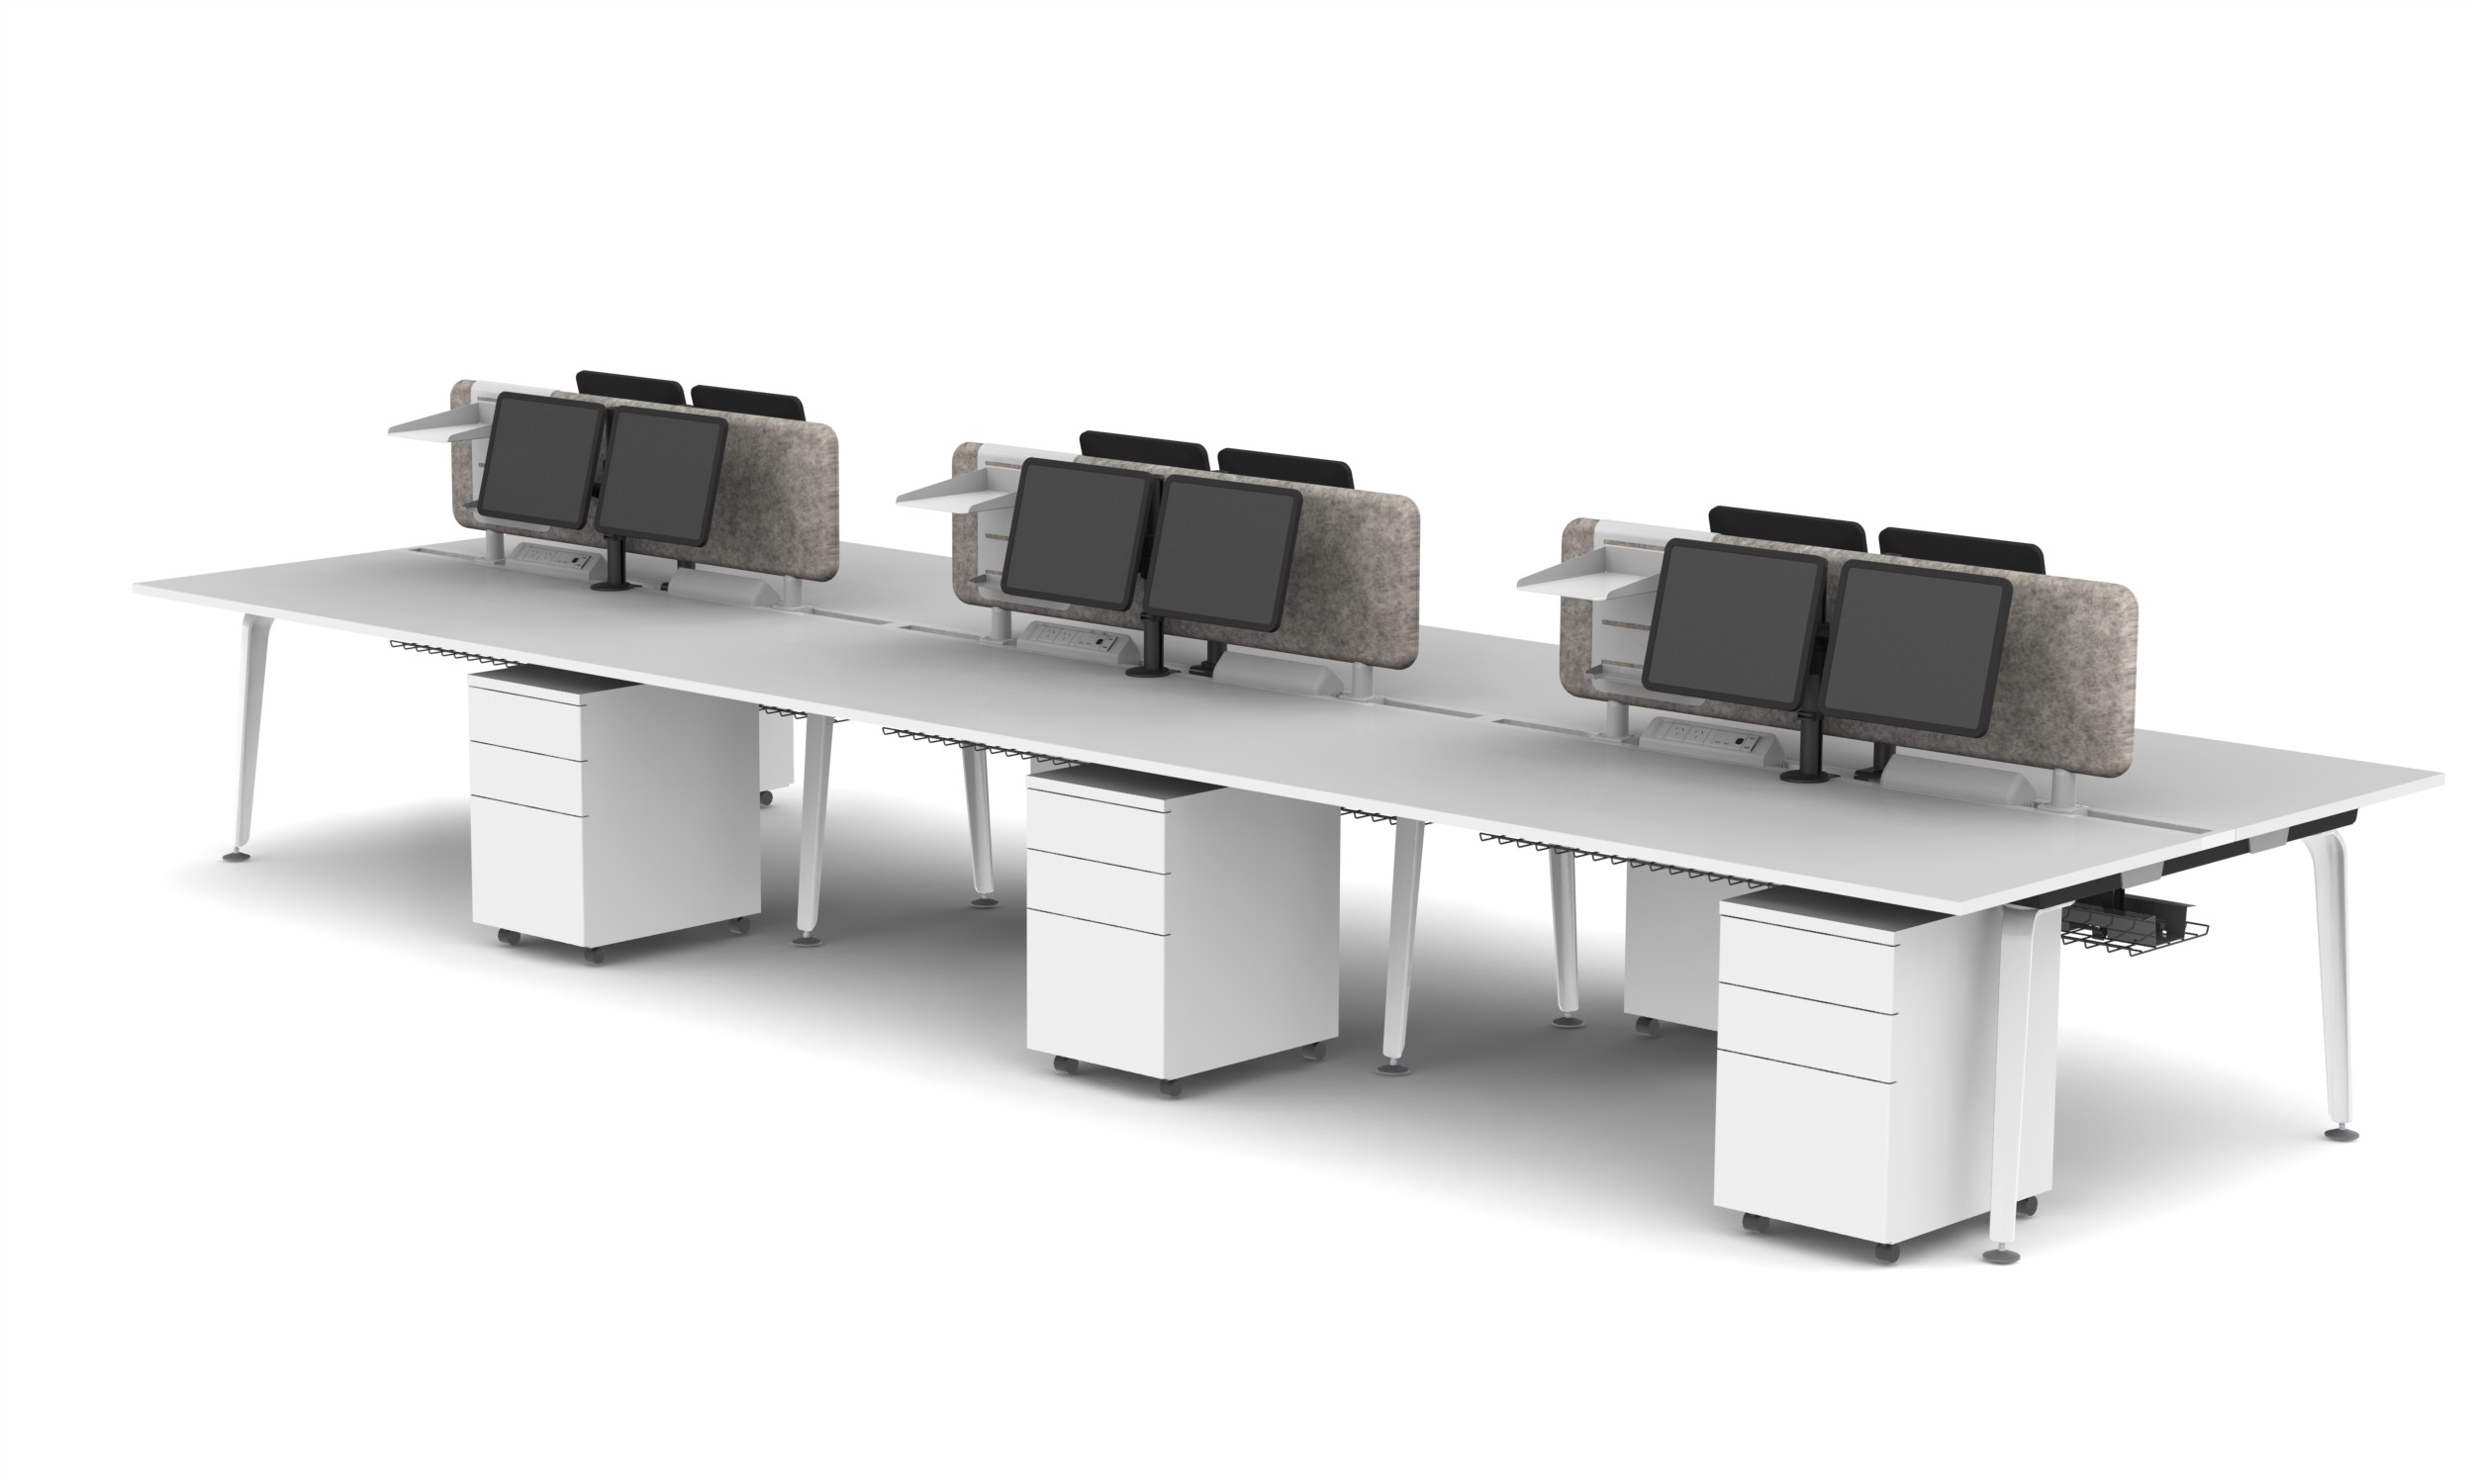 Moment 6 PAX B2B Workstation - Pearl White, Screens, Monitor Arms and Accessory Trays